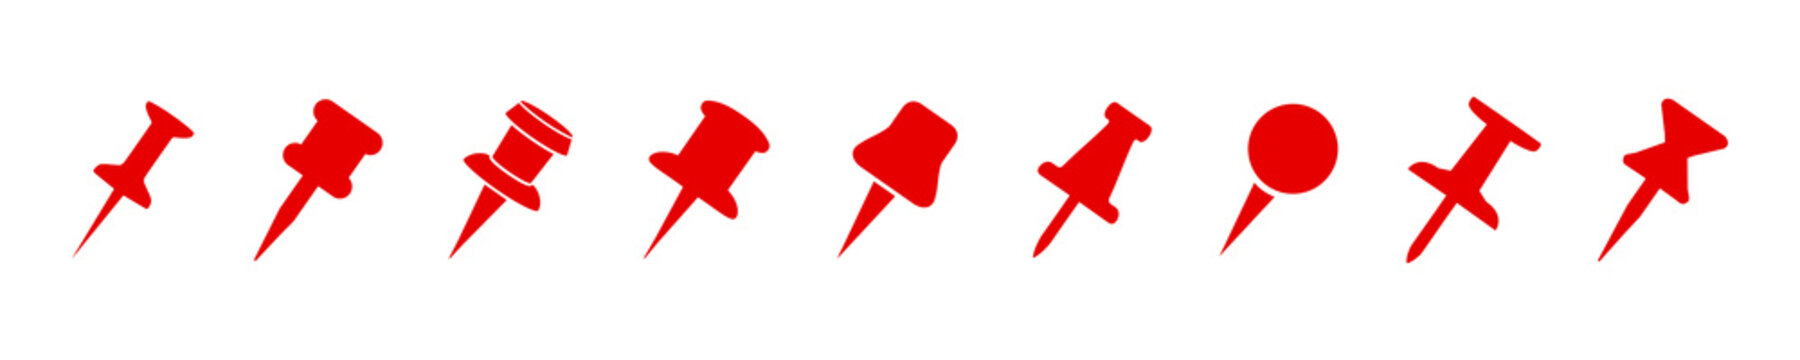 Set push pin sign icons for web site, page and mobile app design element. Push pins pinned in different angles – for stock